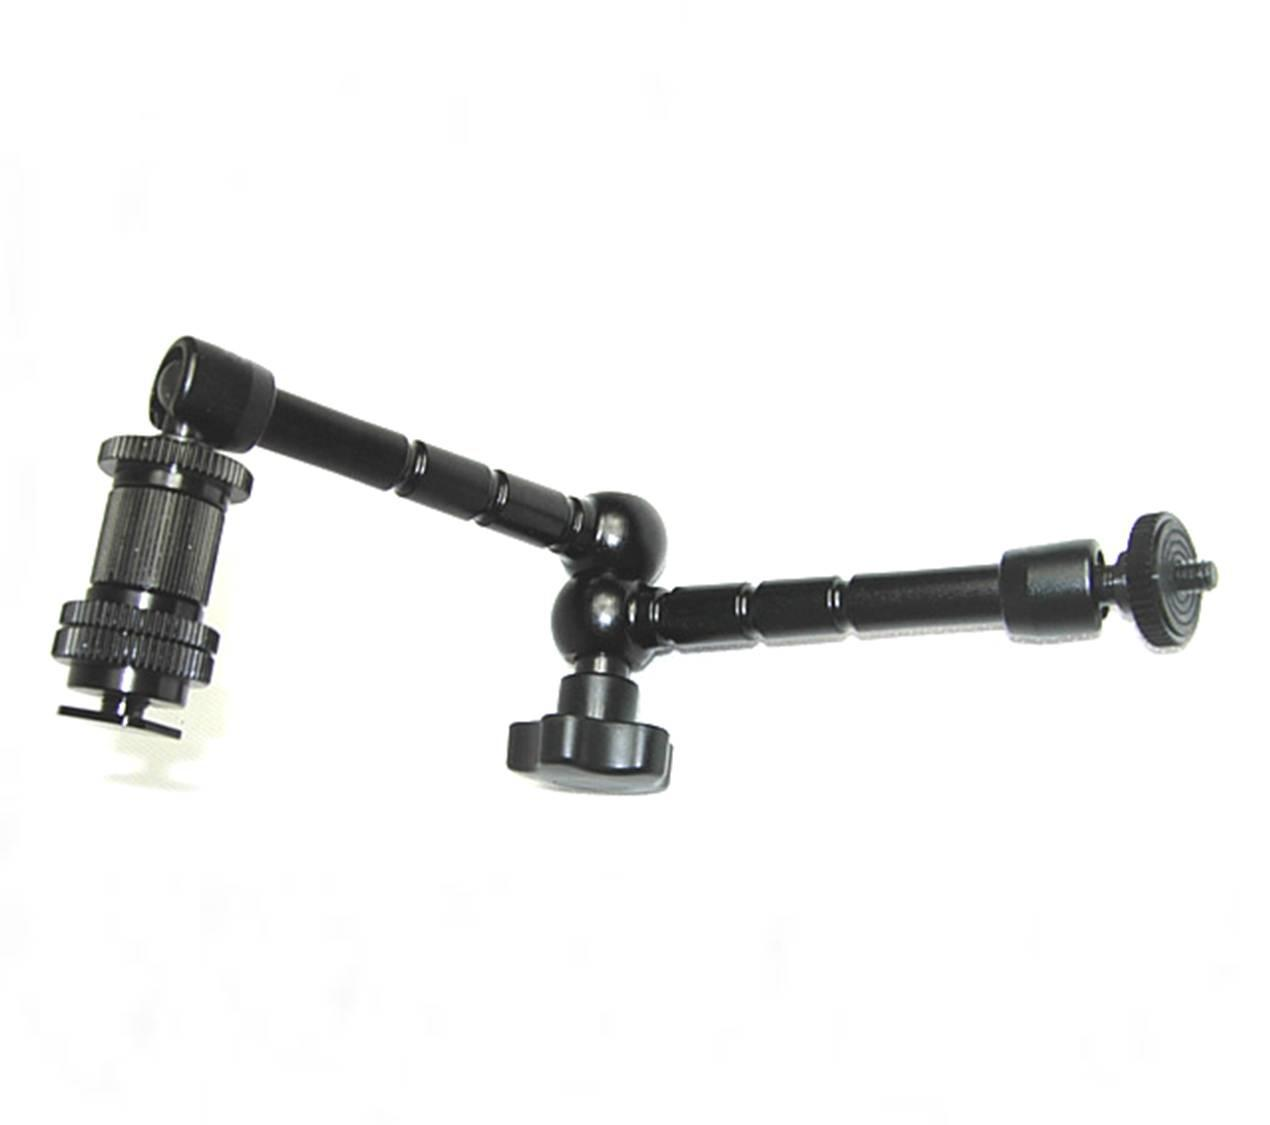 Articulating Magic Arm 11'' Inch + Super Clamp For DSLR Camera Rig Led Light Lcd Field Monitor